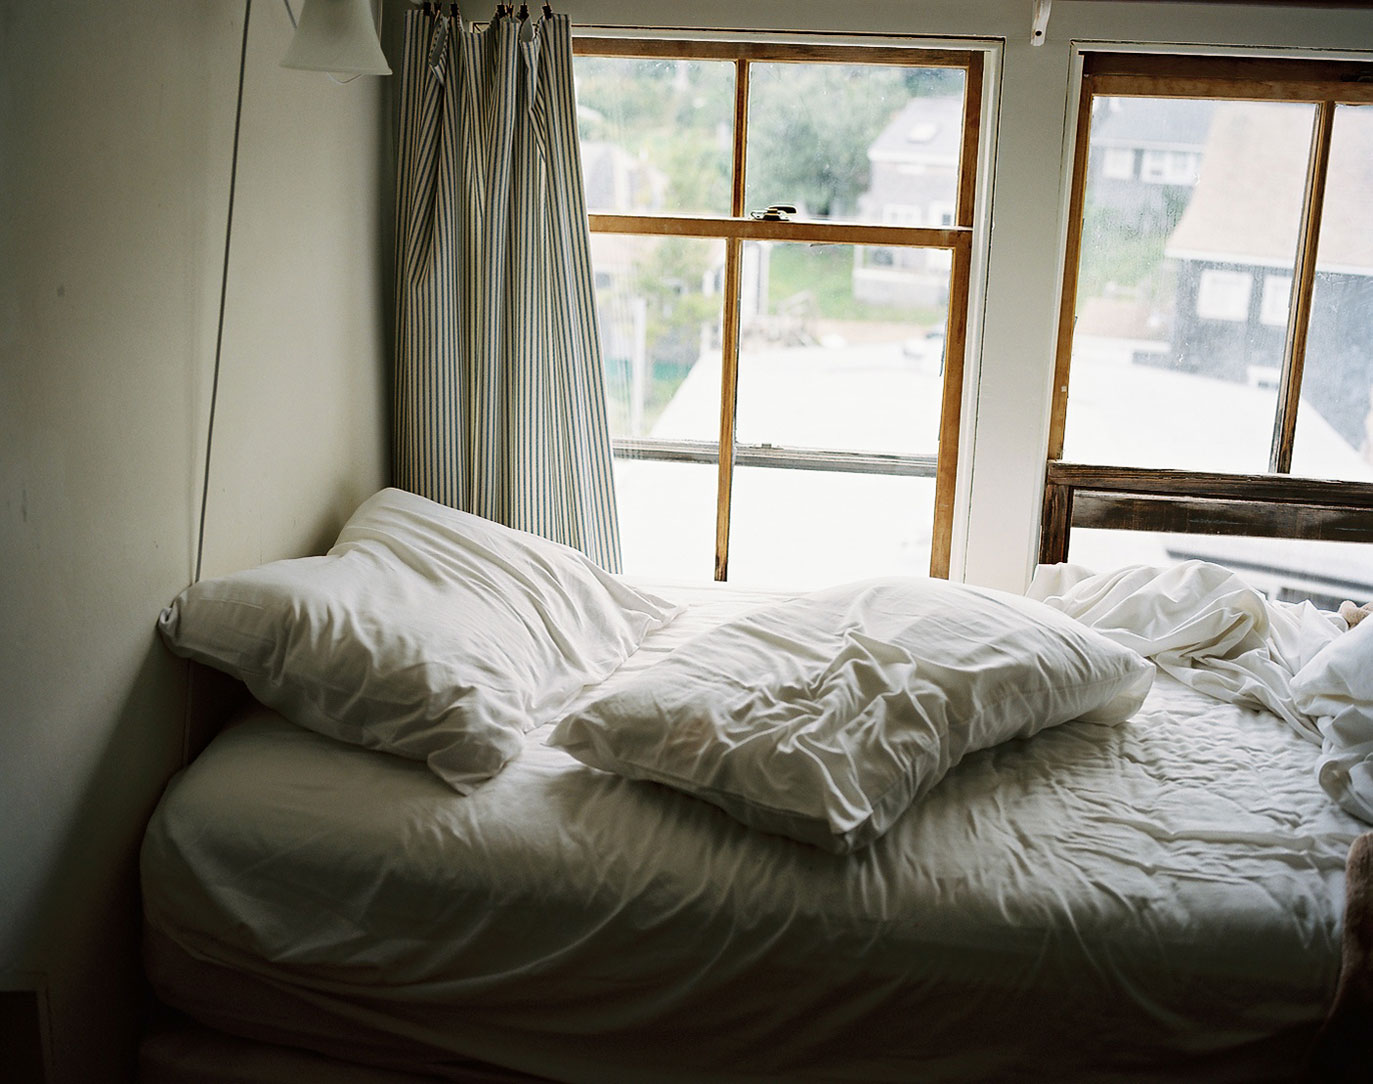 22-UnmadeBed